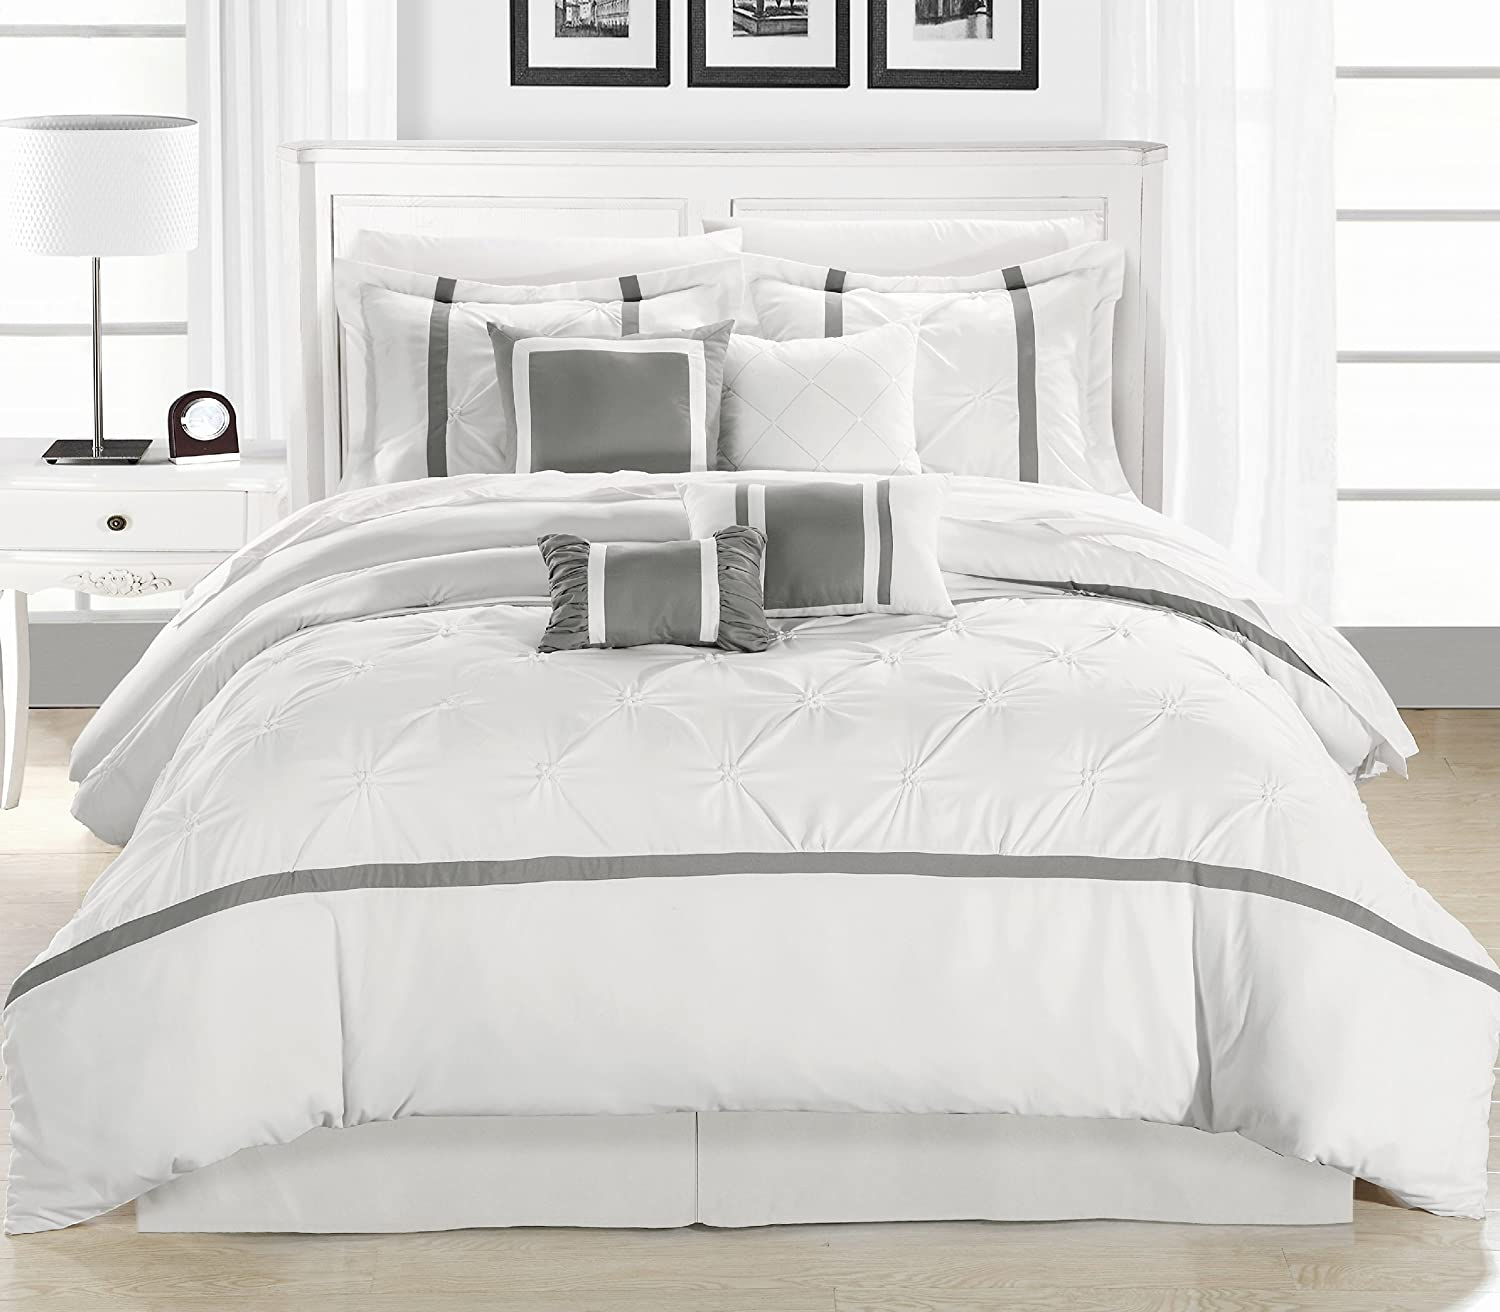 king also comf bedding sage tone bedspreads queen sets comforter and upscale jewel touch target size class comforters in set oversized clearance champagne